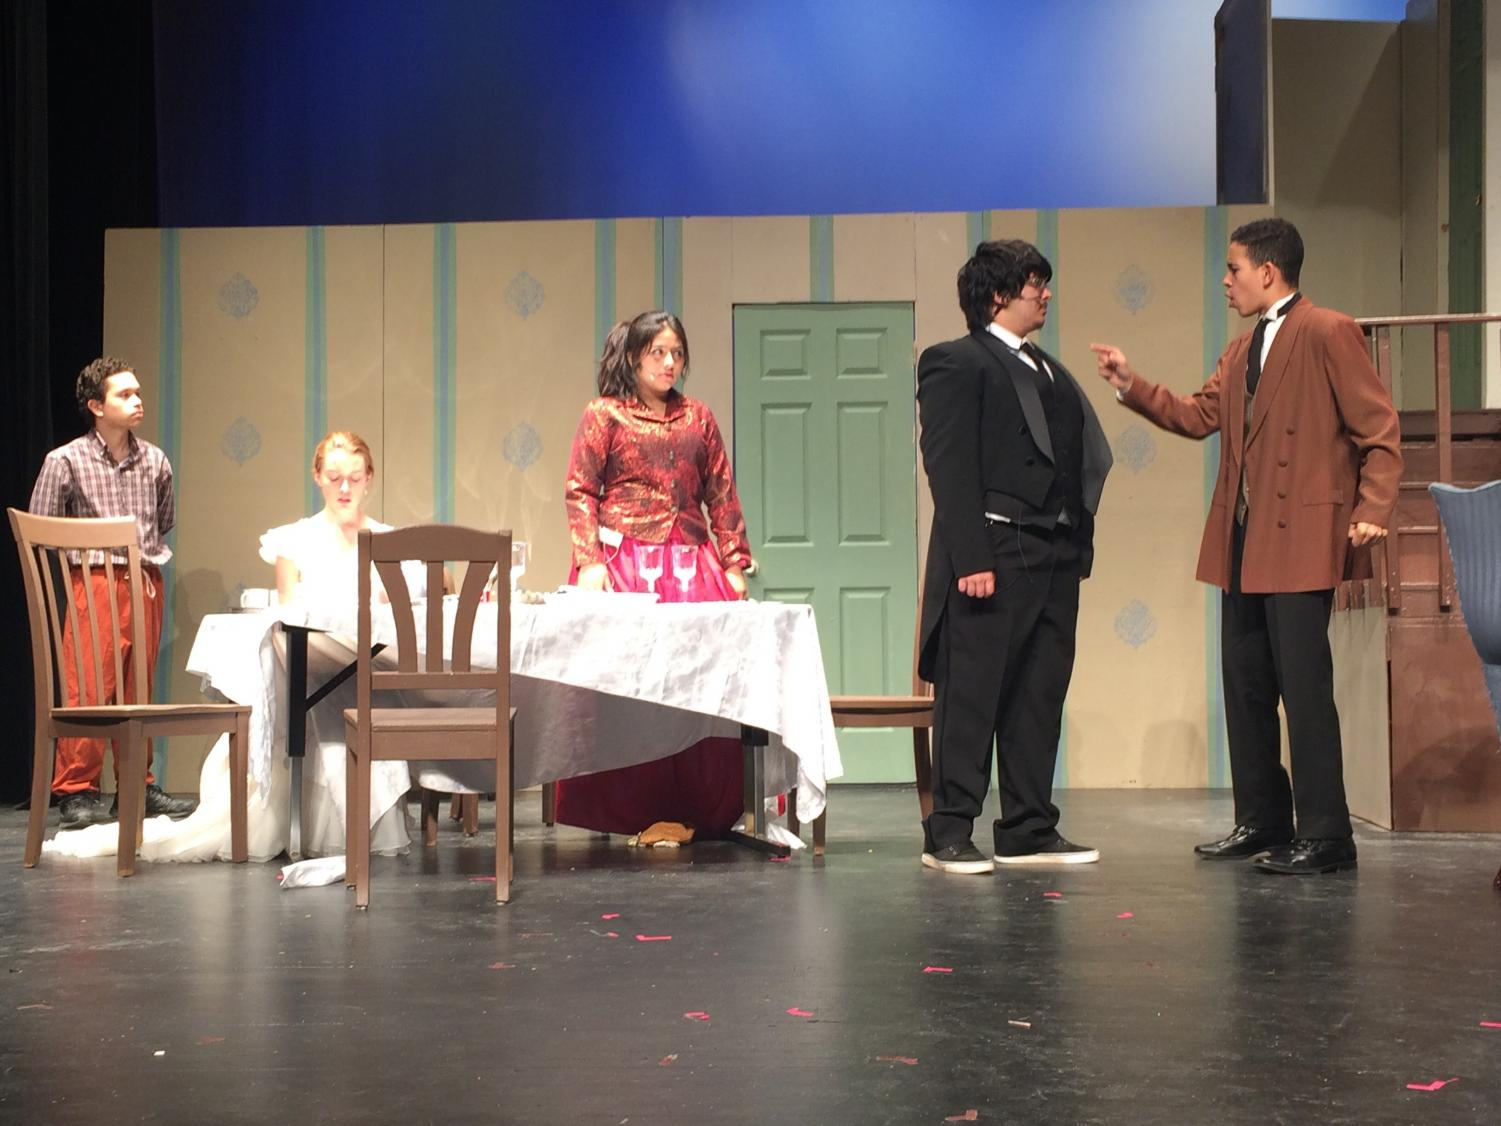 Ray Rodriguez as Percy, Rebecca Williamson as Kate, Kimberly Rodriguez as Aunt Ev, Josh Noah as Capt. Keller, Josh Thomas as James starred in the Dominion production of The Miracle Worker.